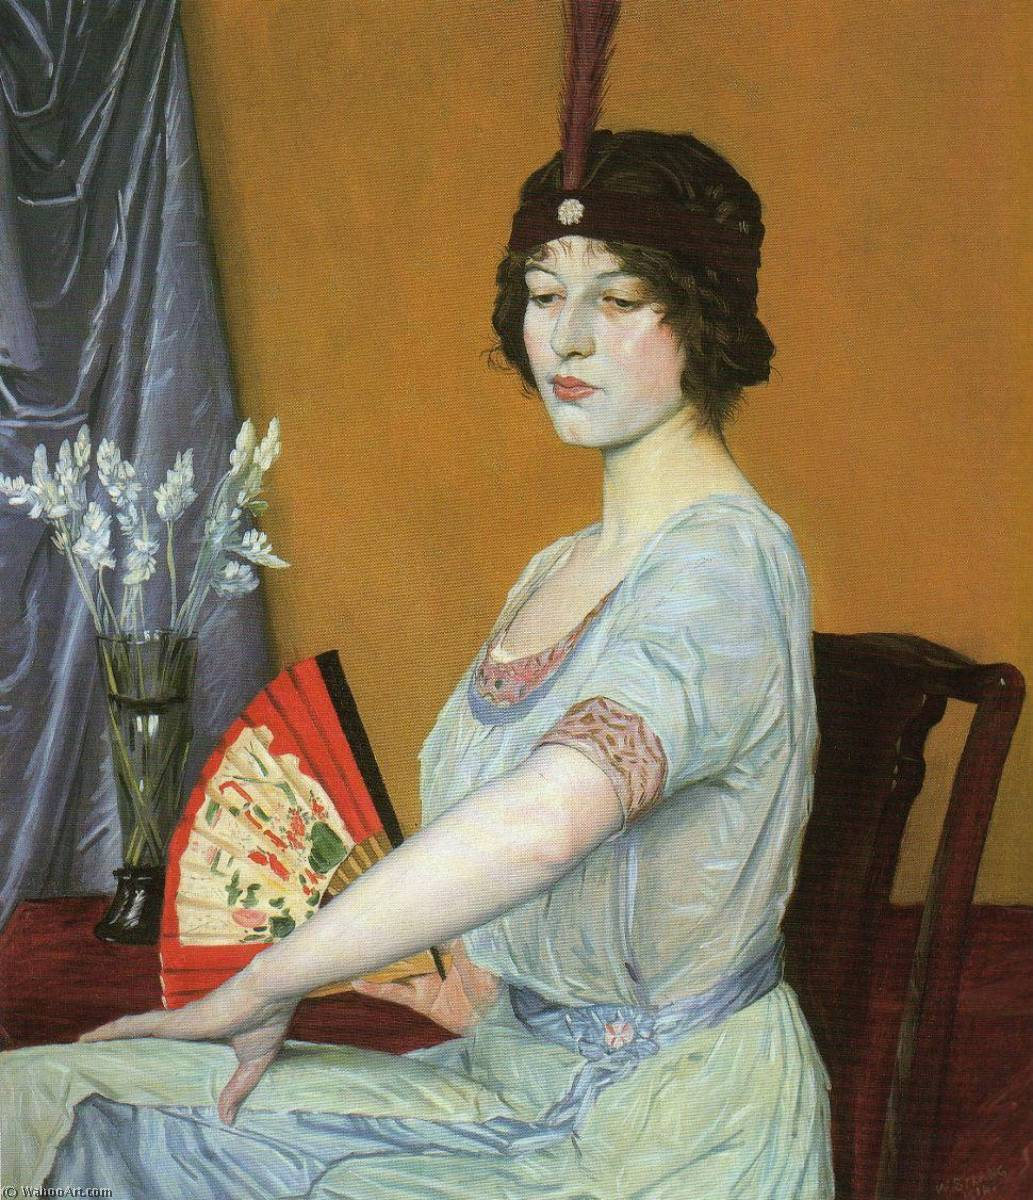 The Japanese Fan, 1910 by William Strang (1859-1921)